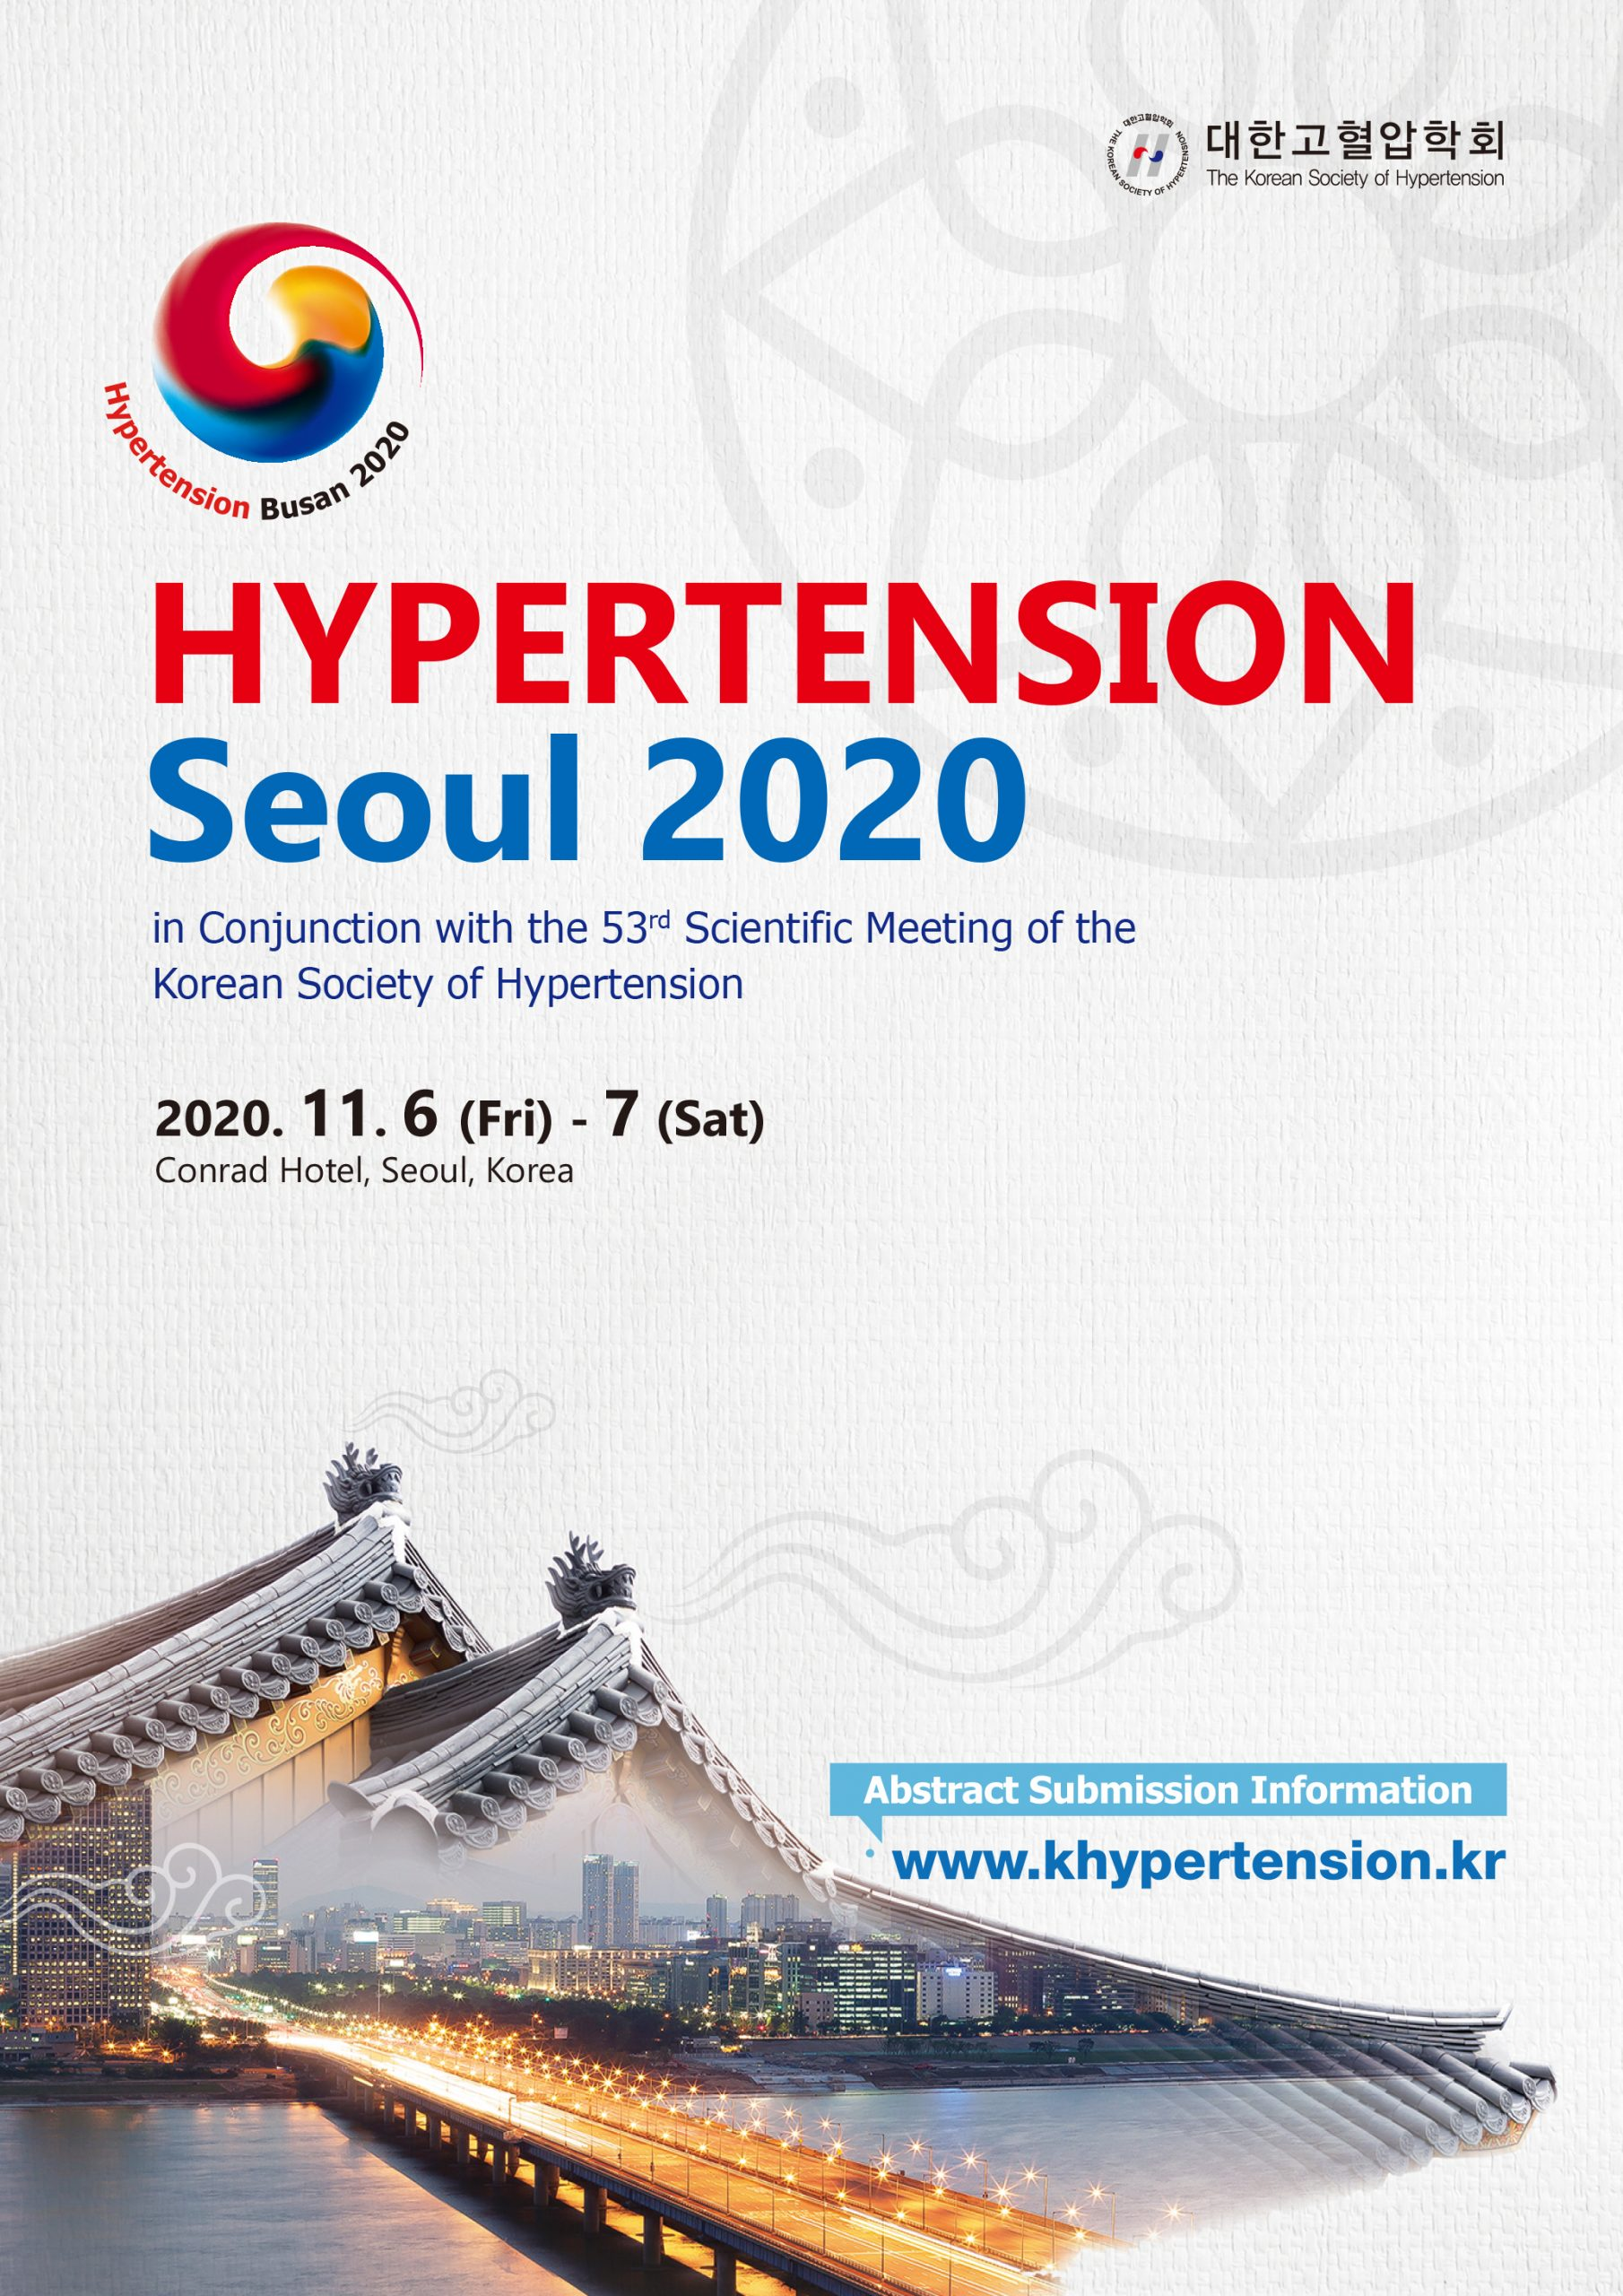 Hypertension Seoul 2020